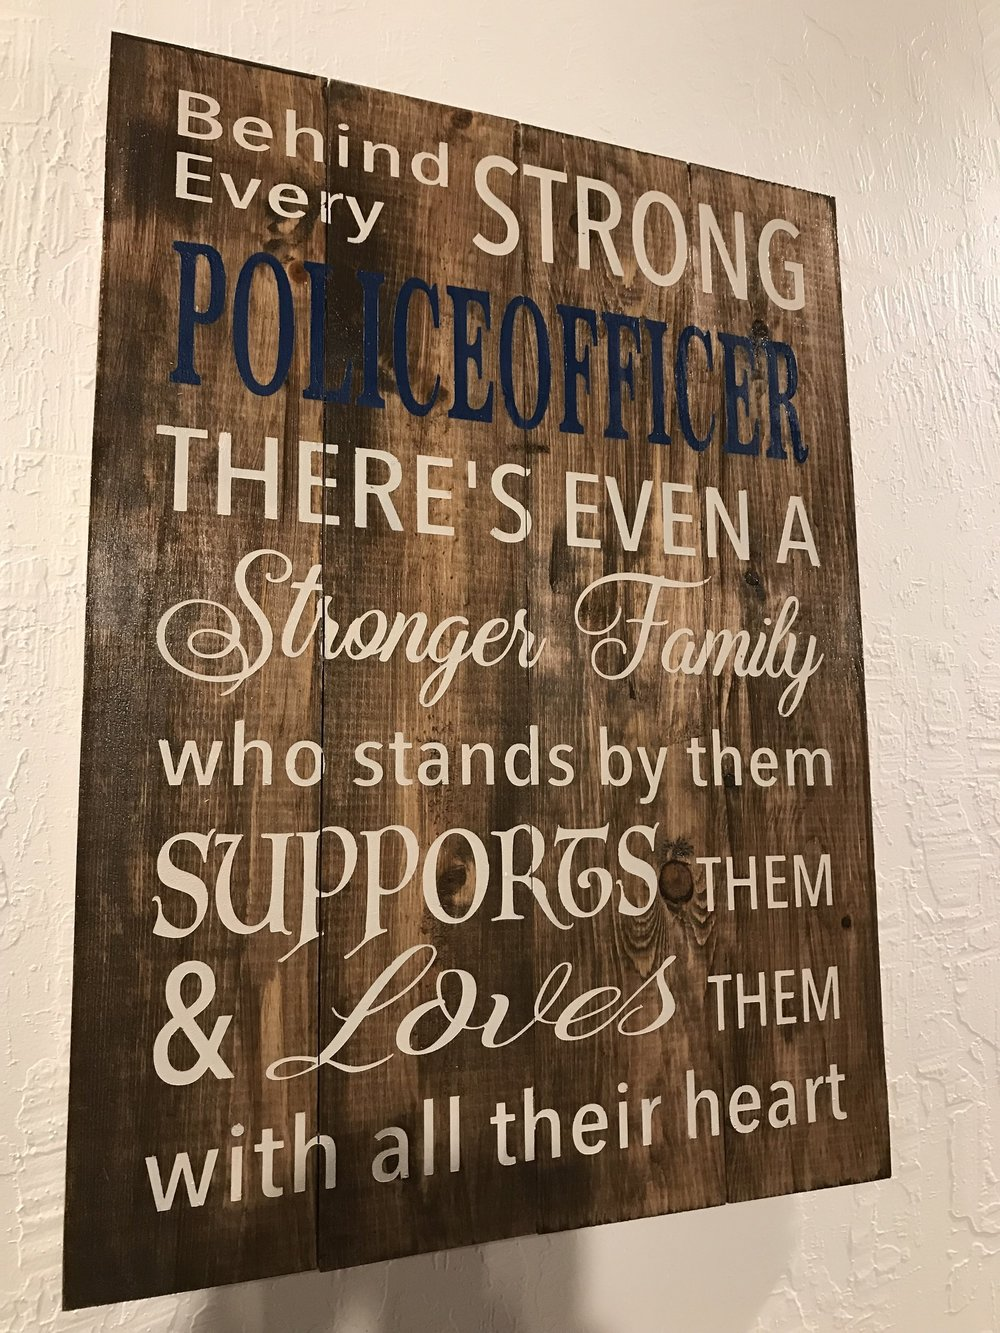 Behind Every Strong Police Officer..